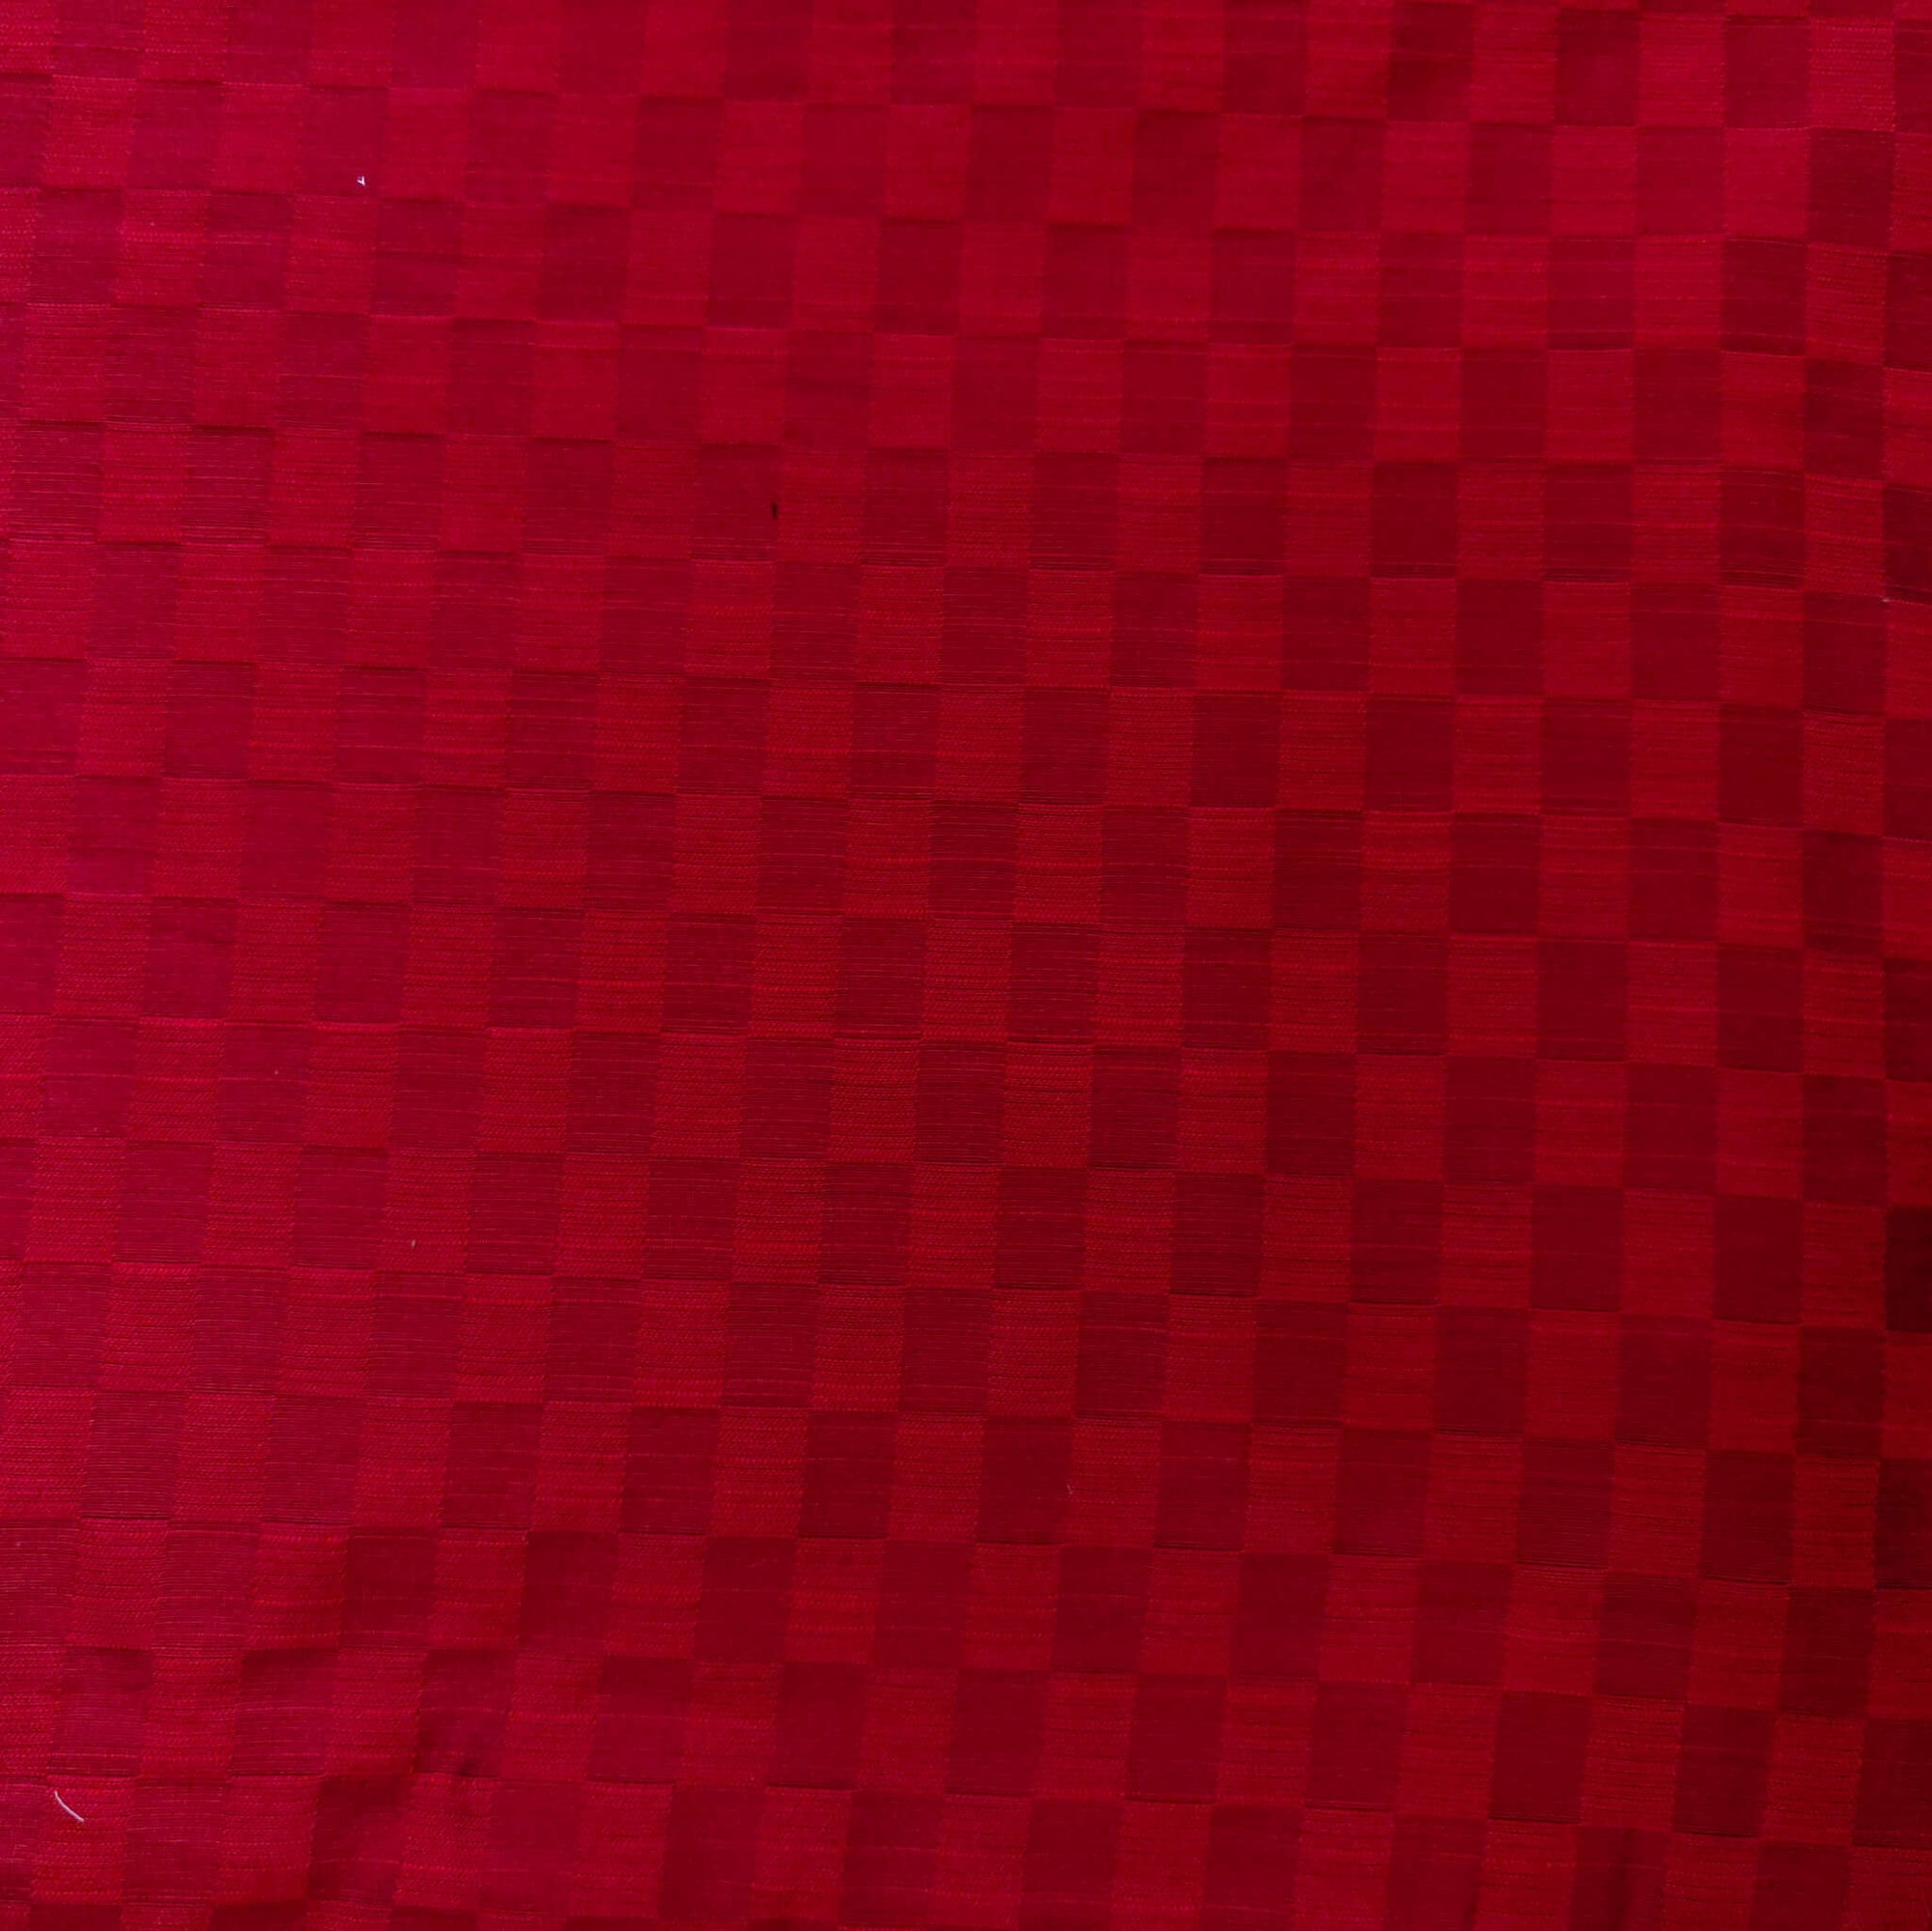 Cotton Silk Red With Interlocked Checks Fabric